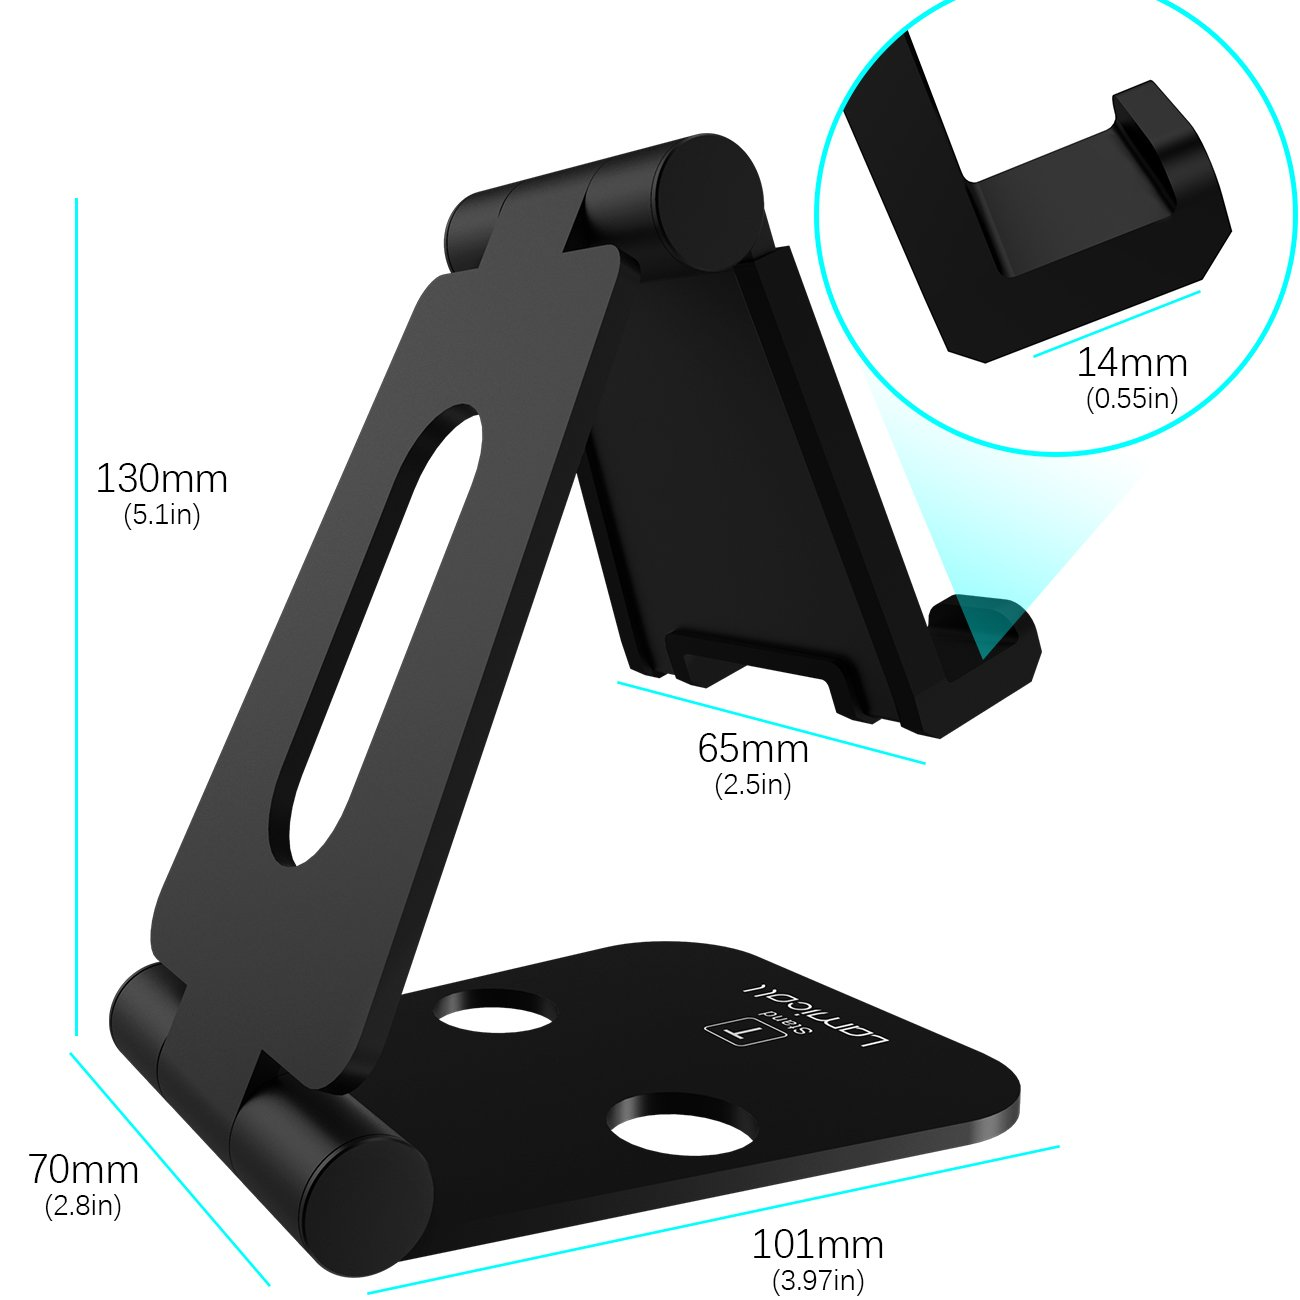 Multi-Angle Stand for Nintendo Switch, Lamicall Playstand : Cell Phone Tablet Video Game Holder Dock Compatible with Phone 7 6 Plus 5, Accessories, iPad and Tablets (4-10'') Foldable Adjustable- Black by Lamicall (Image #6)